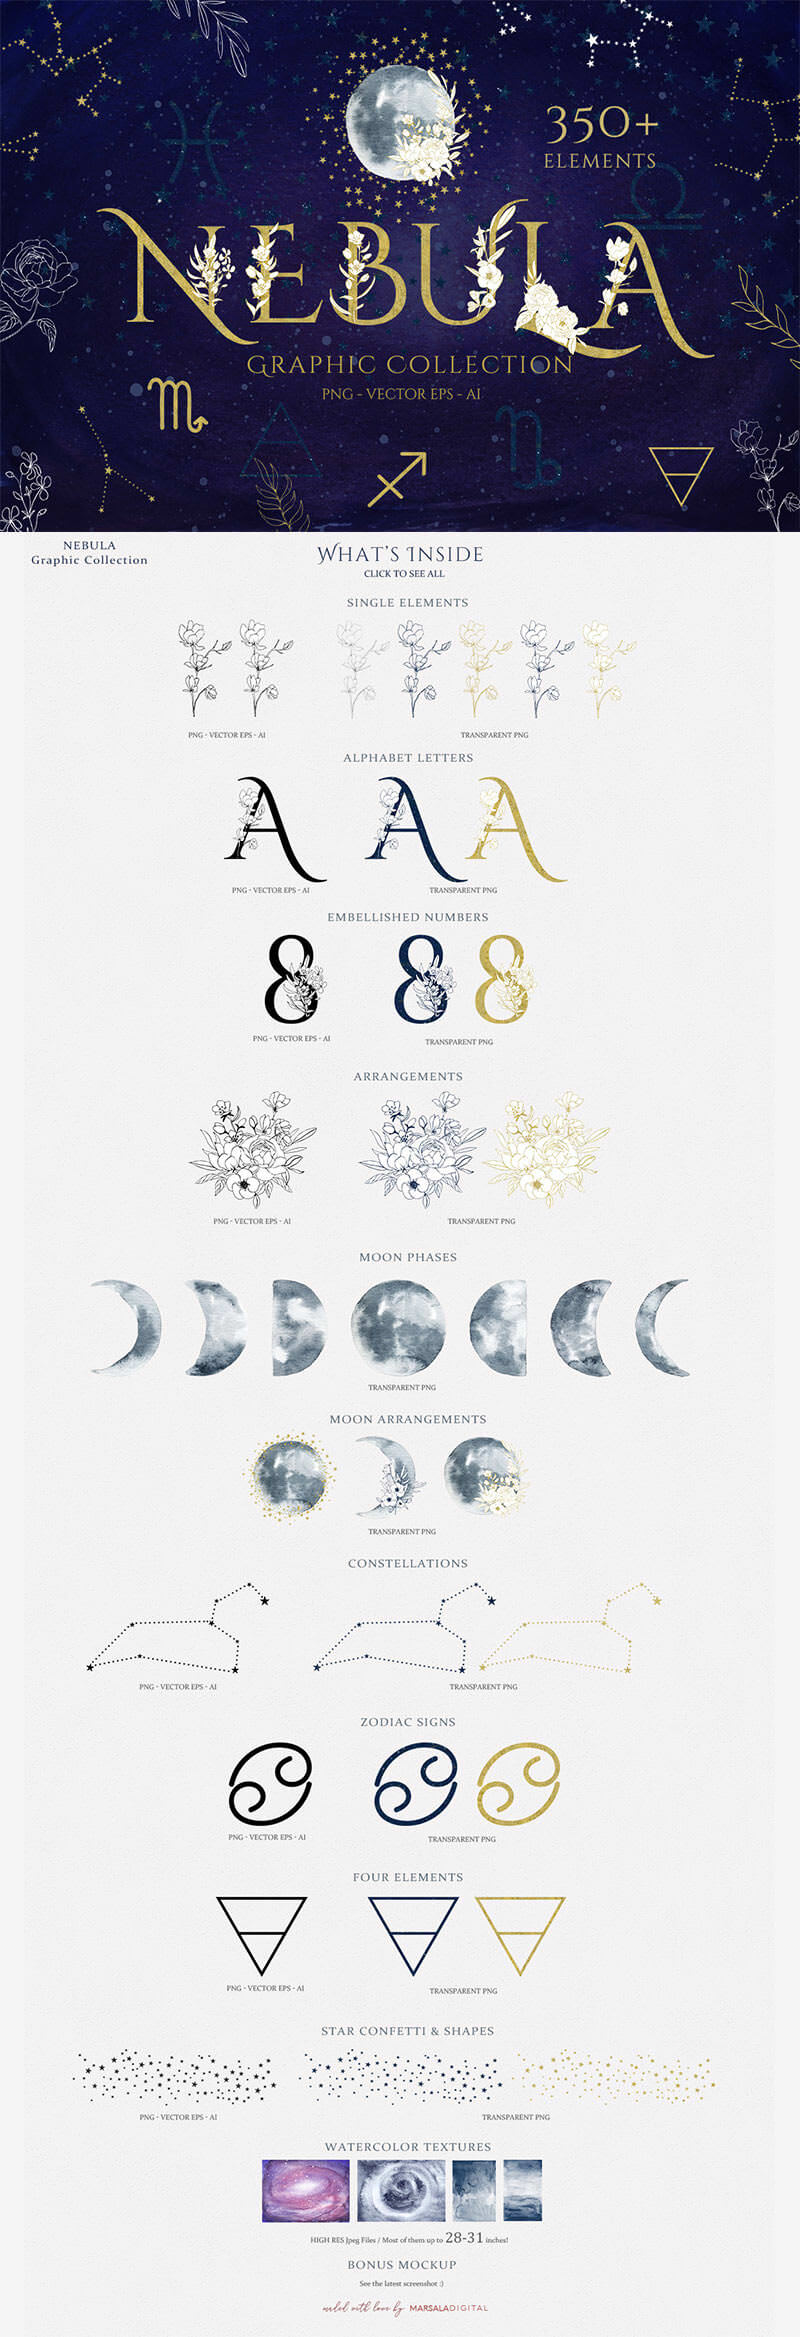 Zodiac-Constellations-Moon-Phases-1